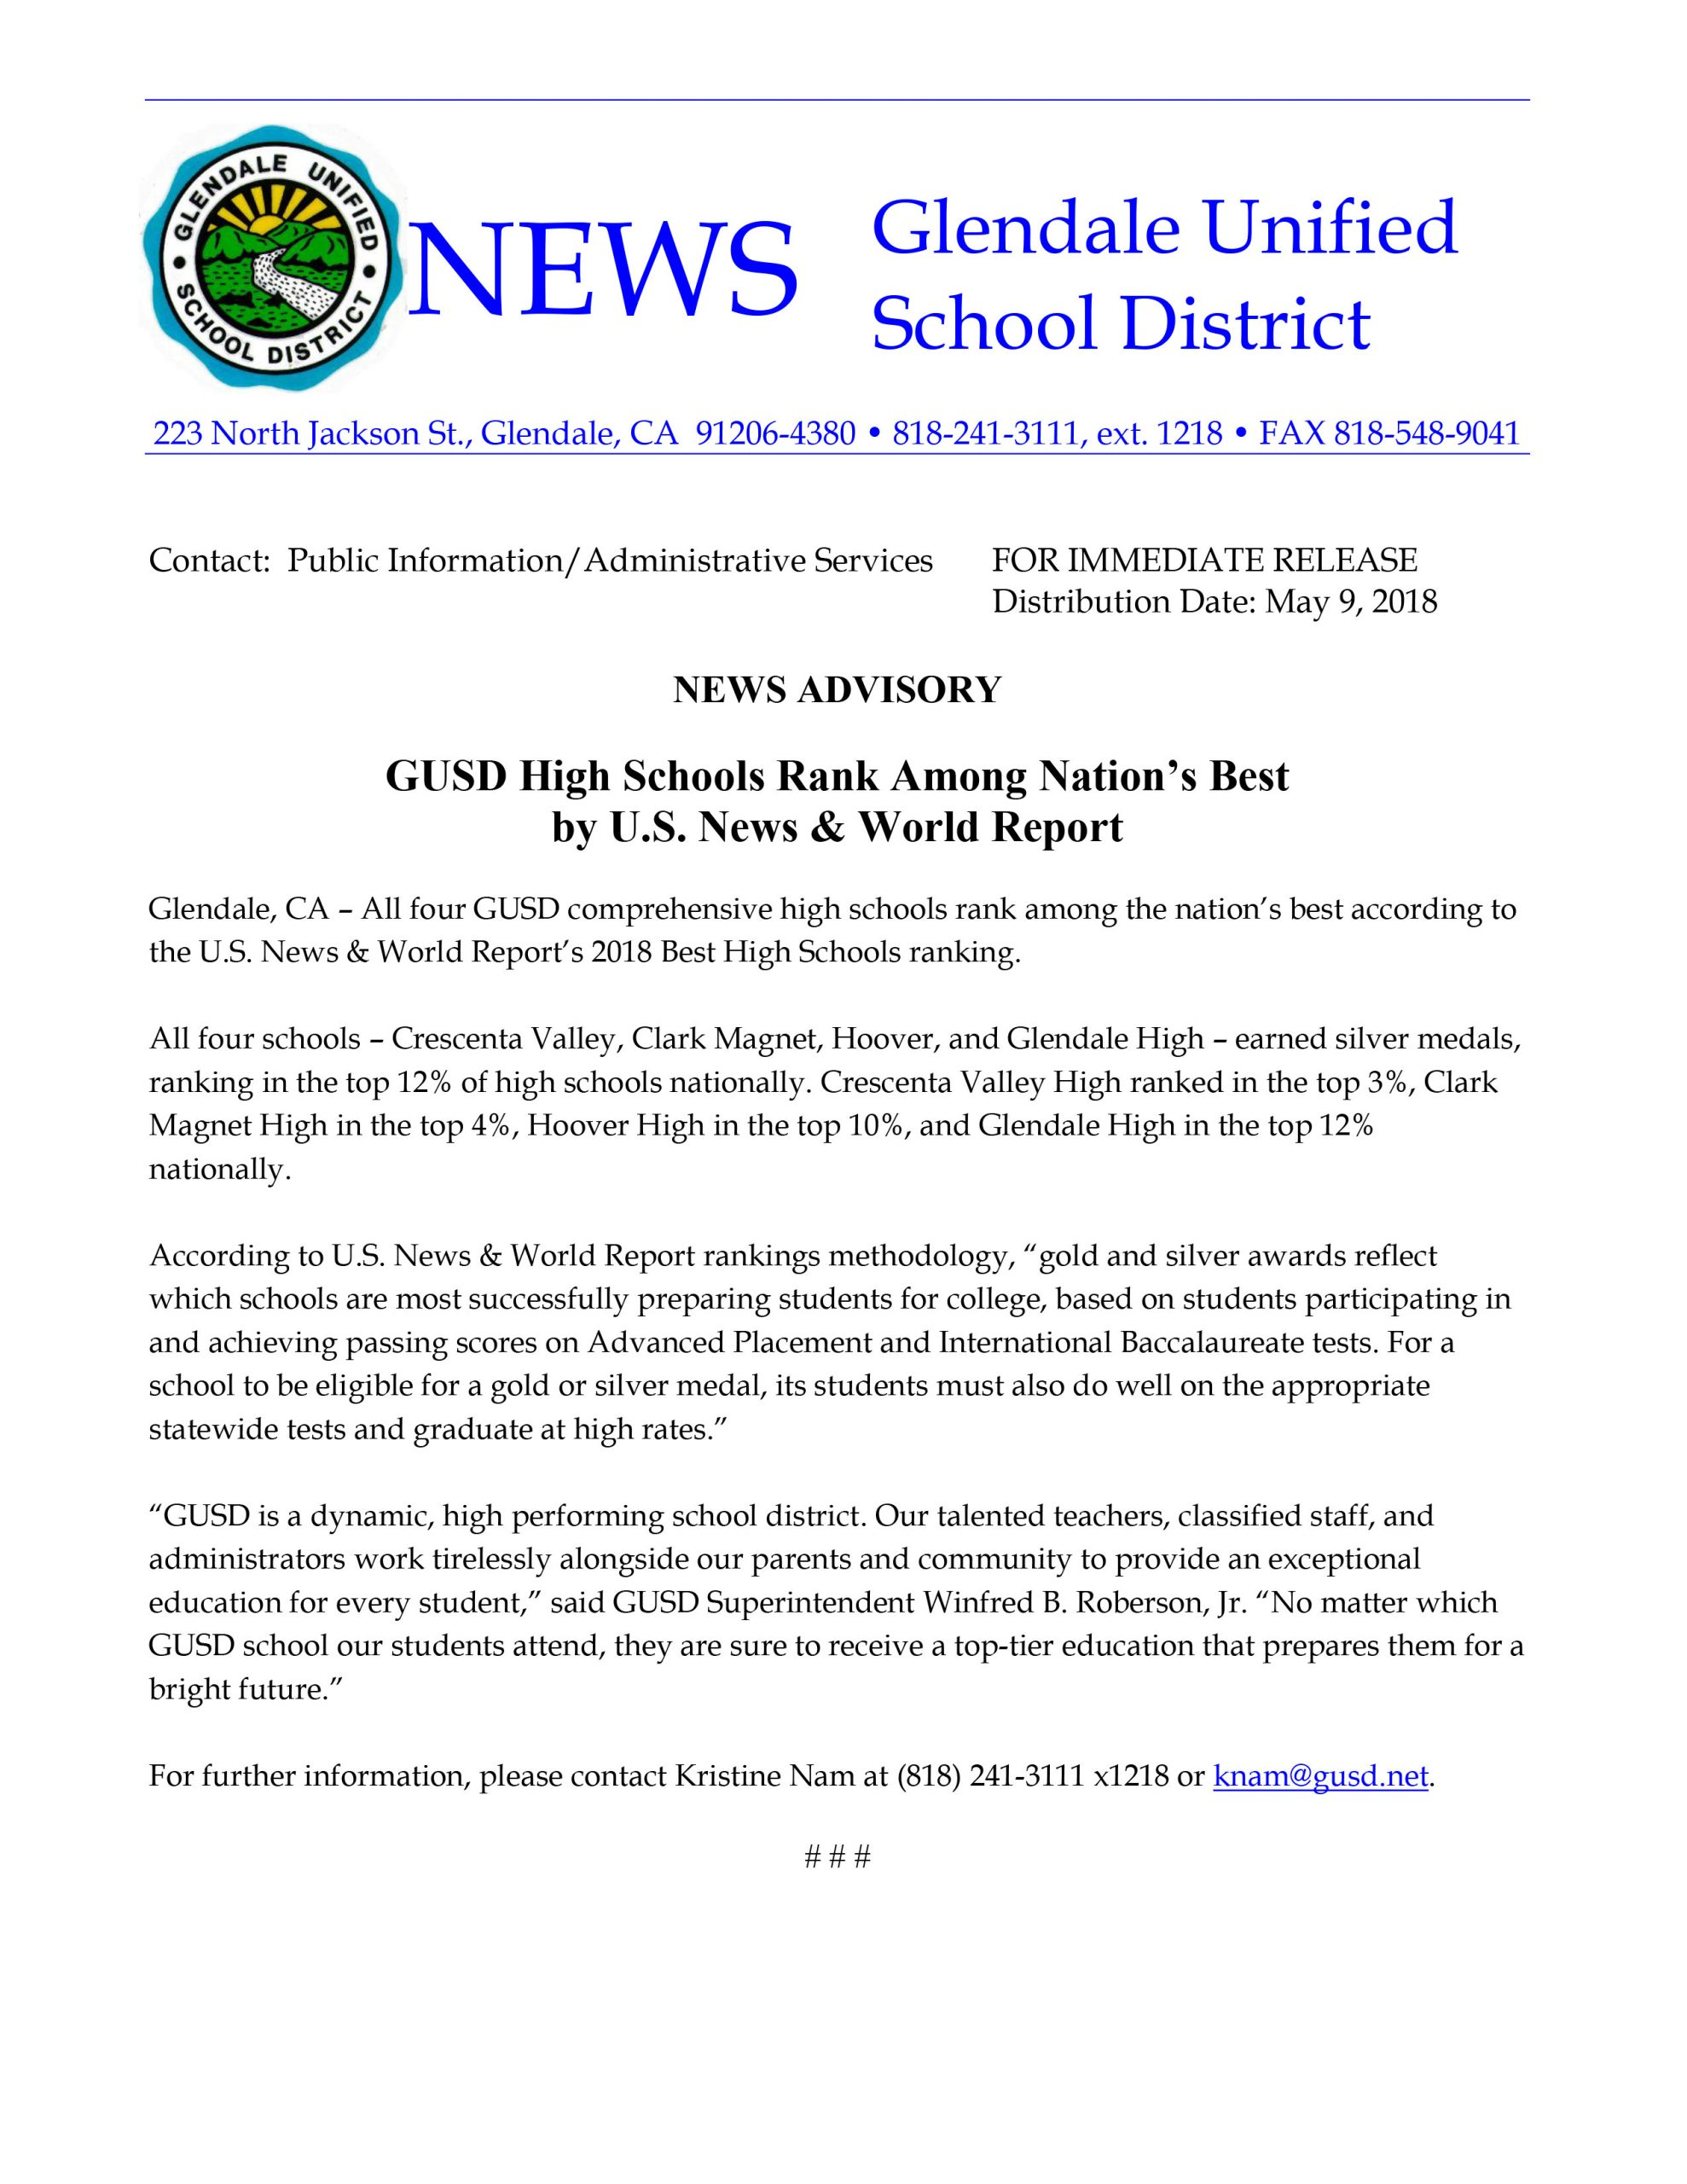 Gusd High Schools Rank Among Nations Best By Us News World Throughout Glendale Unified School District Calendar